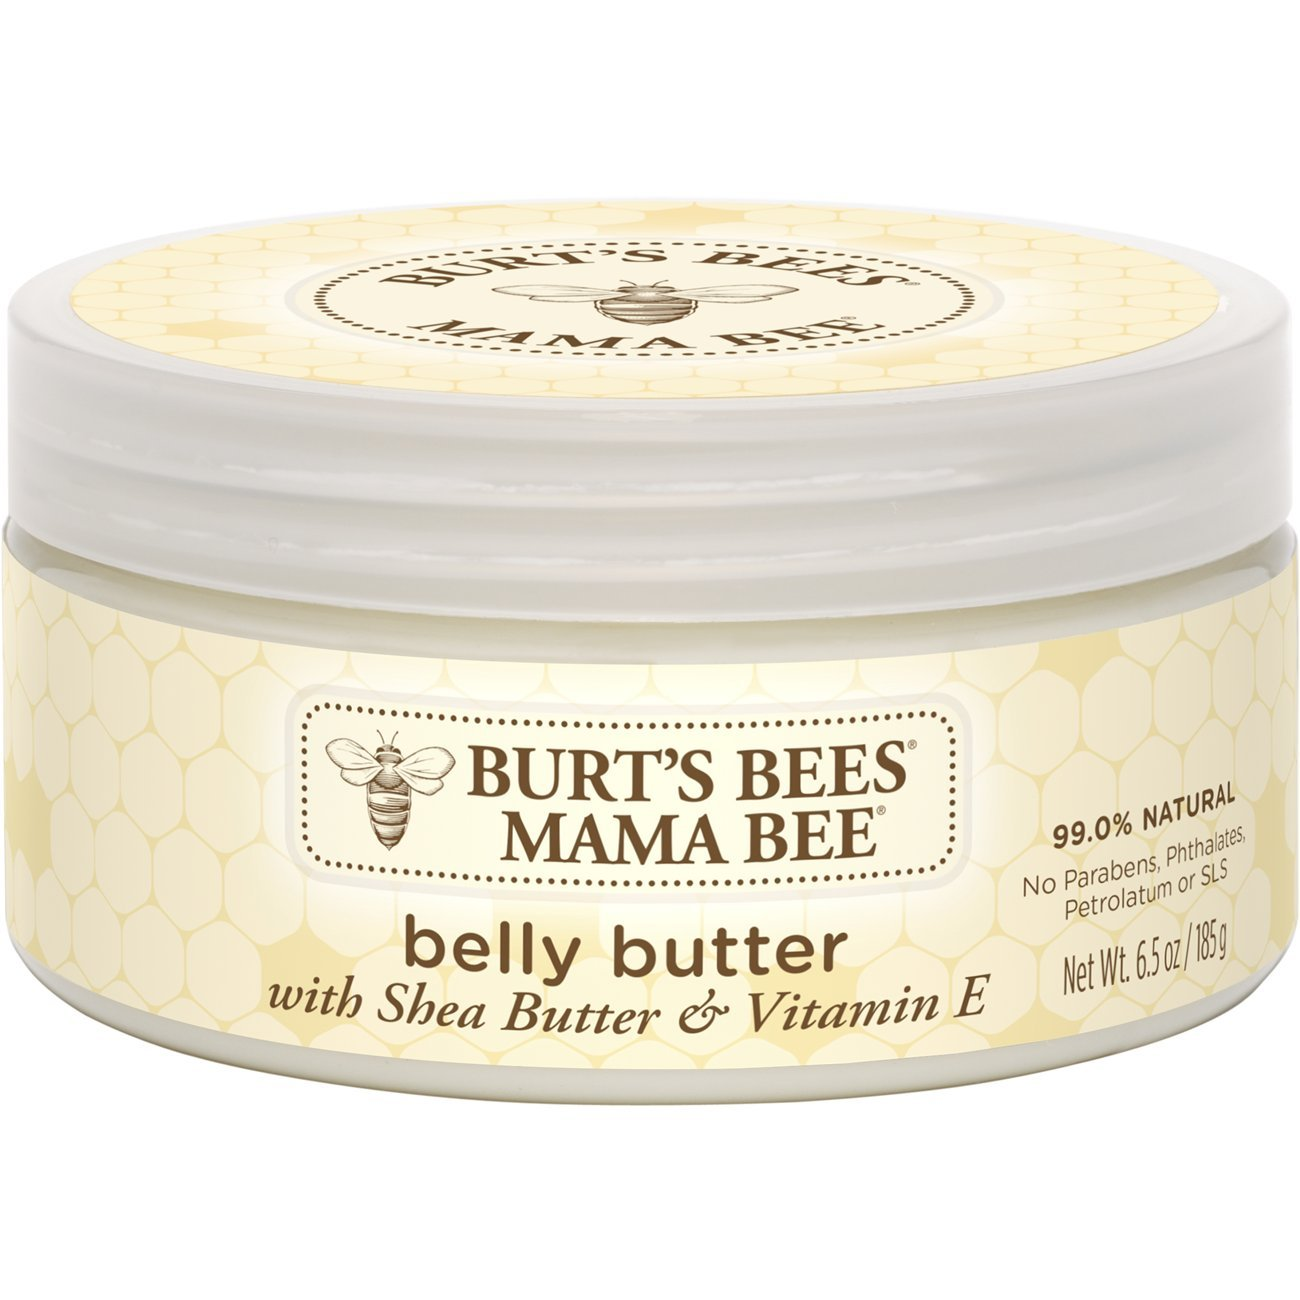 Burt's Bees Mama Bee Belly Butter, Fragrance Free Lotion - 6.5 Ounce Tub